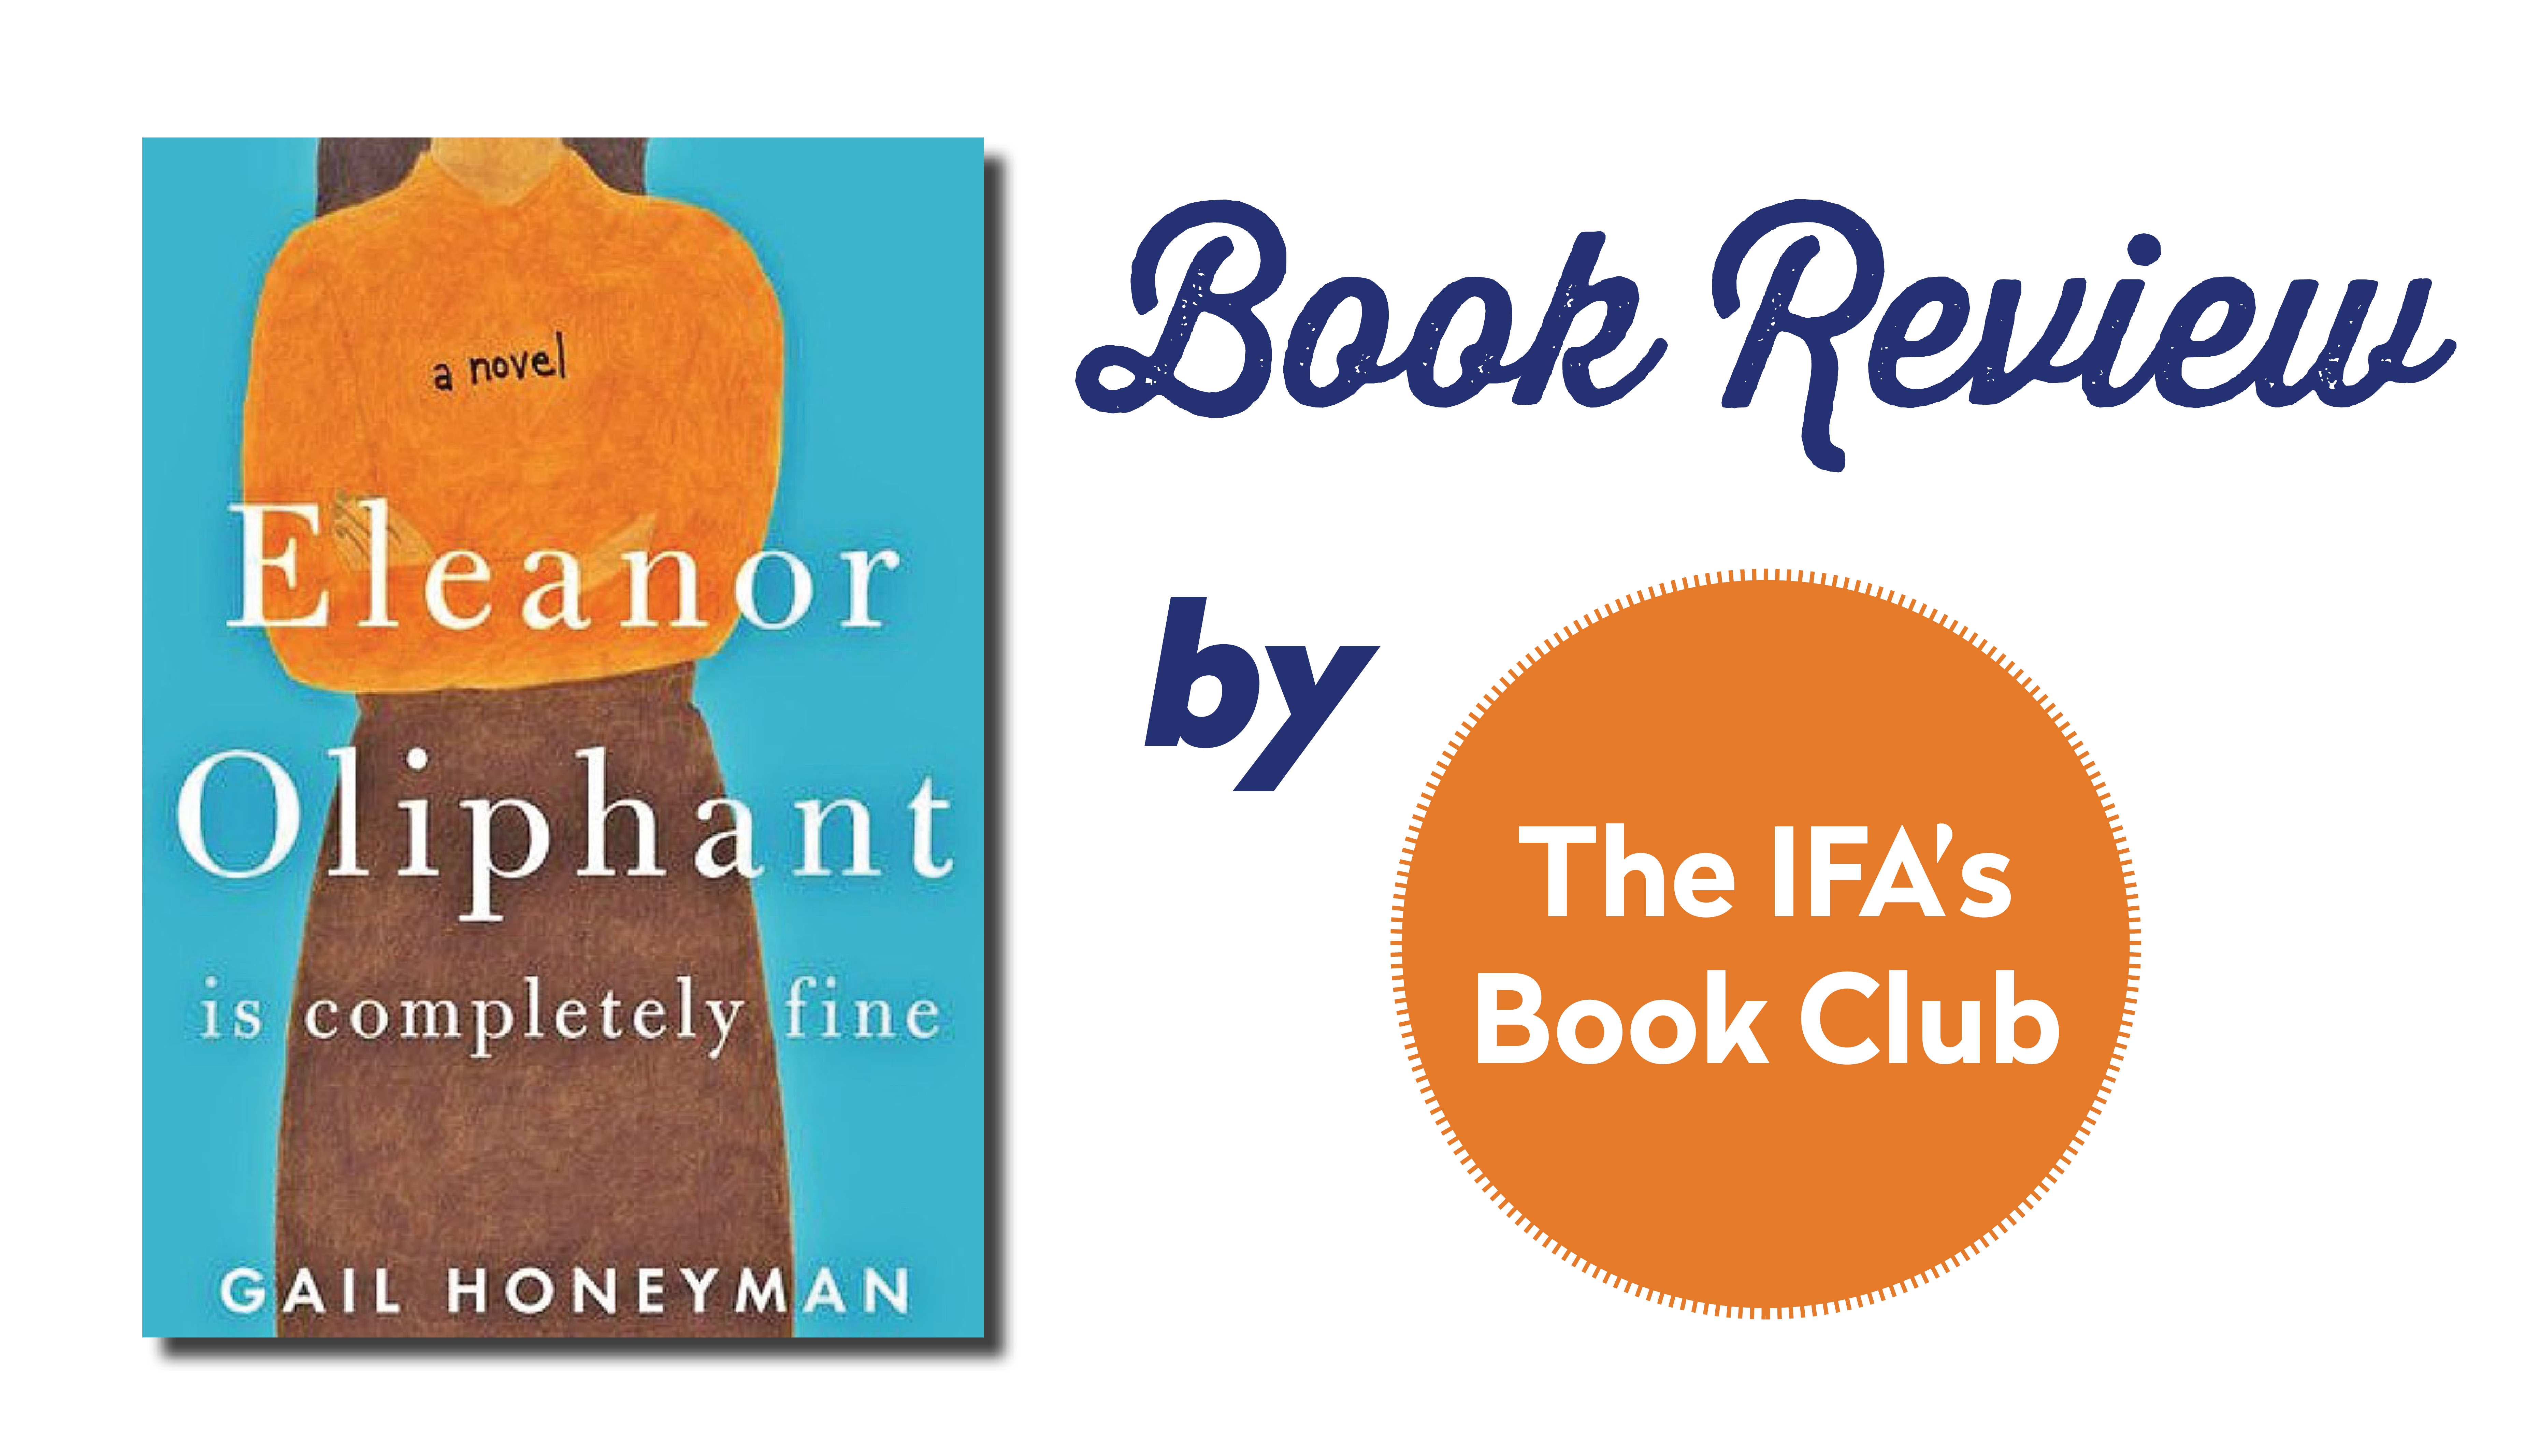 Eleanor Oliphant Bookreview